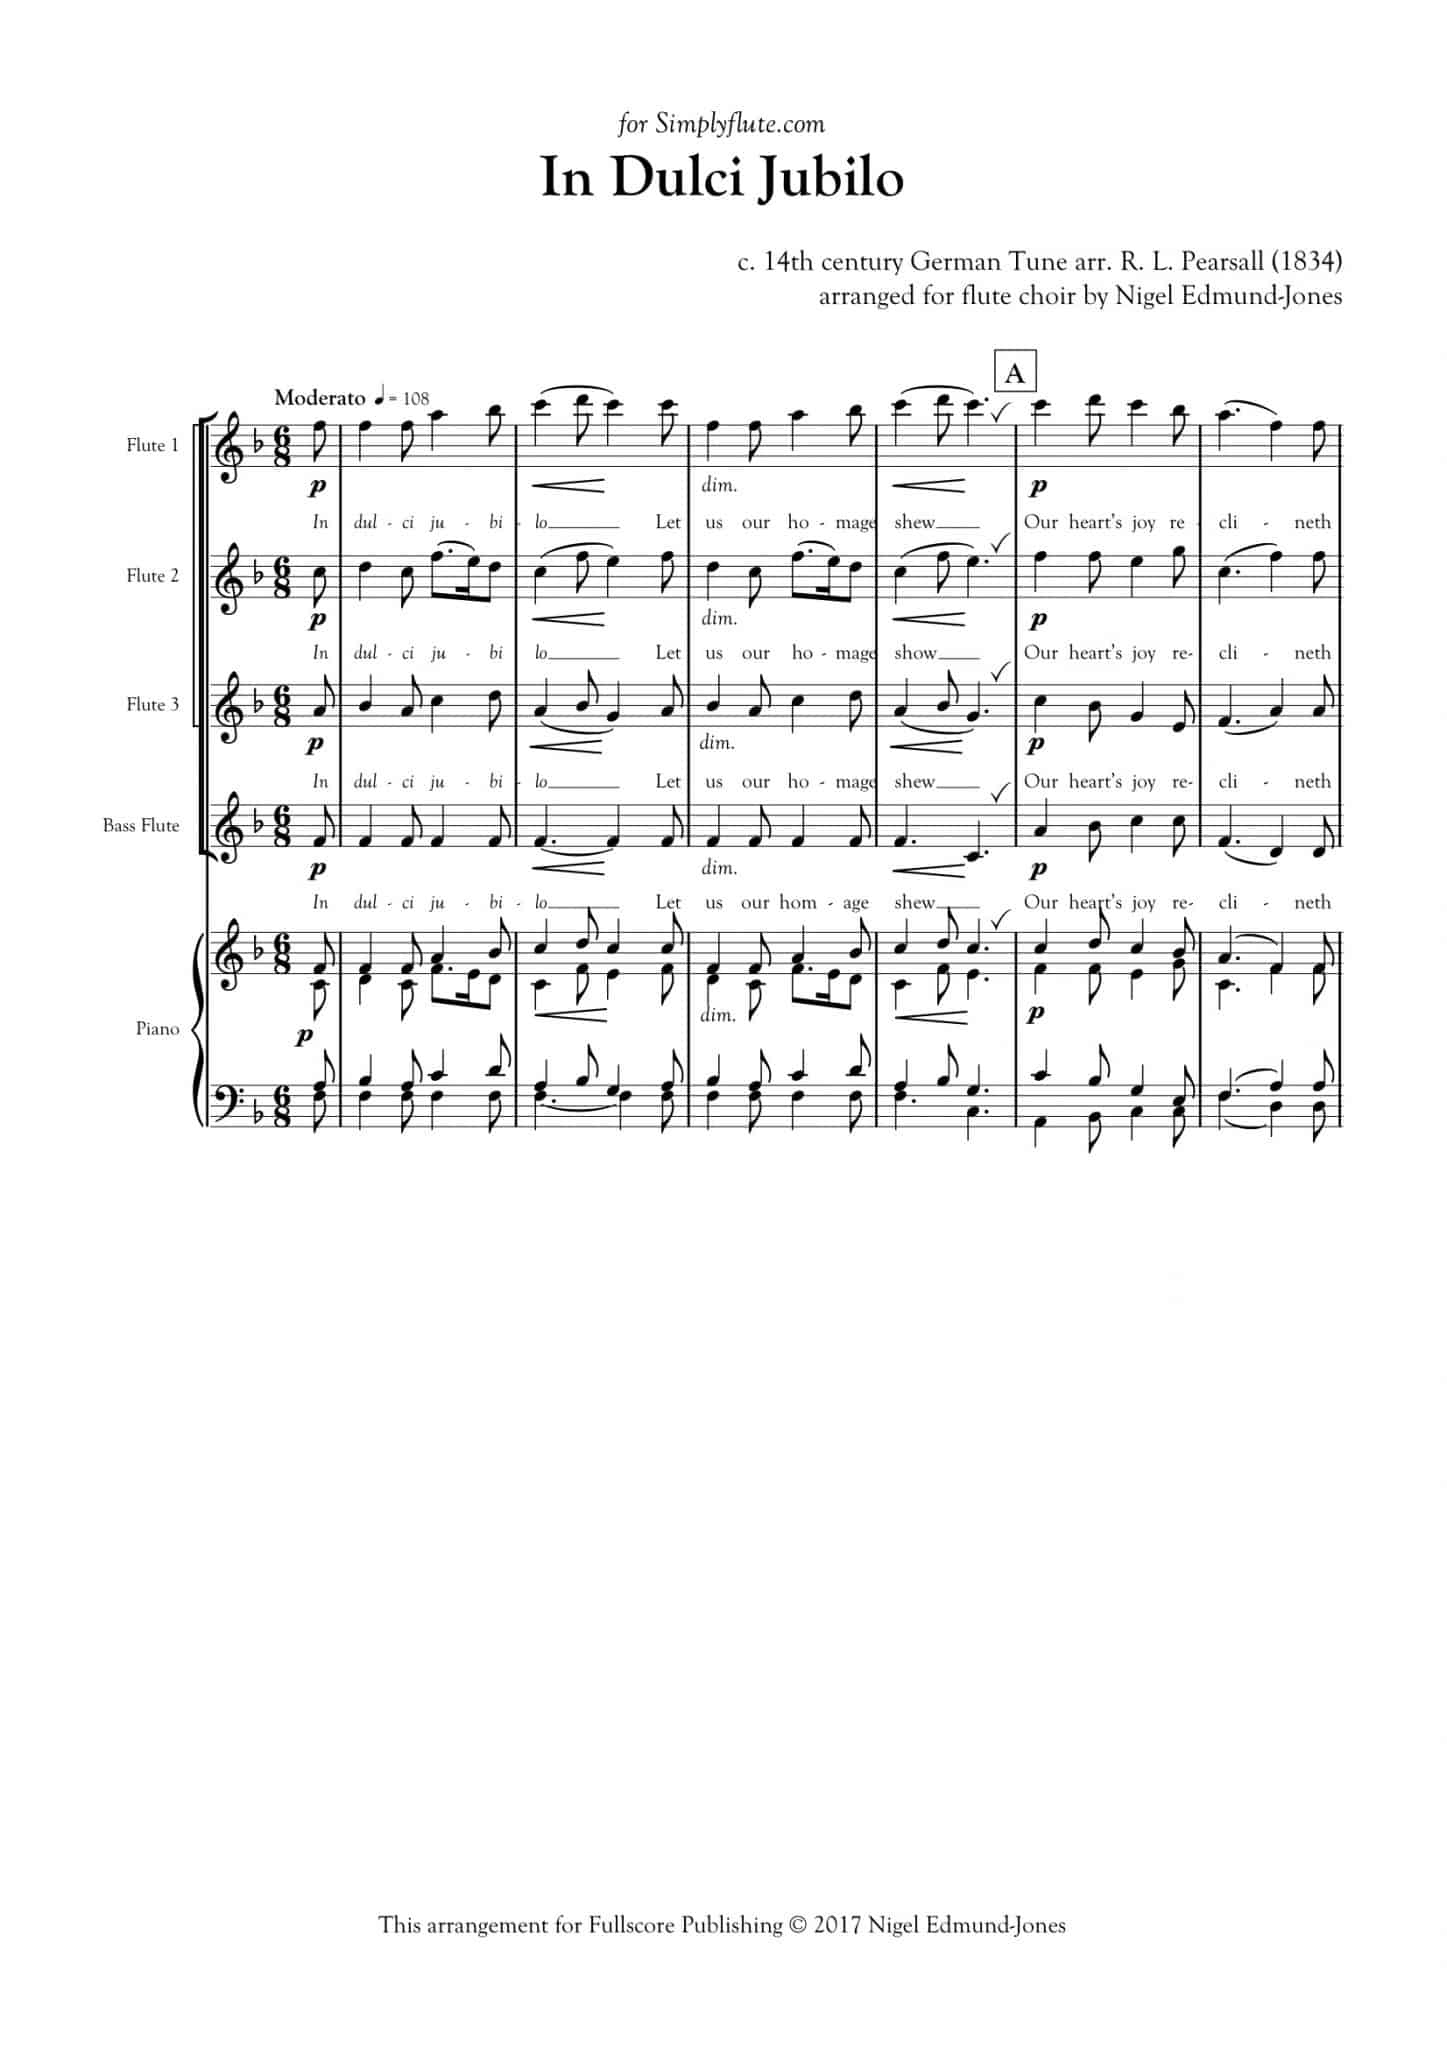 Simply Flute - In Dulci Jubilo - all parts_title sheet_no words copy_Part10